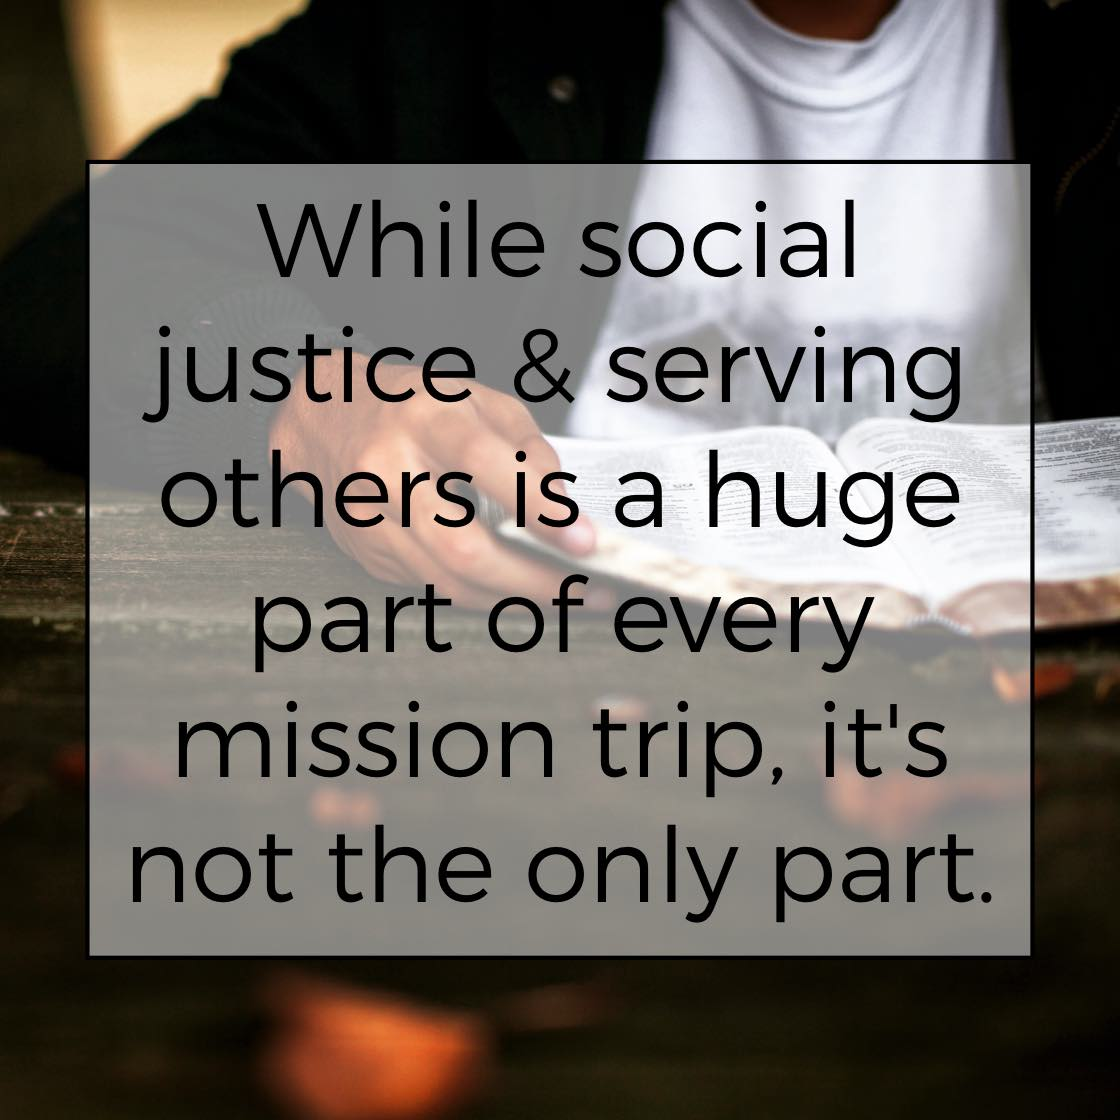 While social justice and serving others is a huge part of every mission trip, it's not the only part.